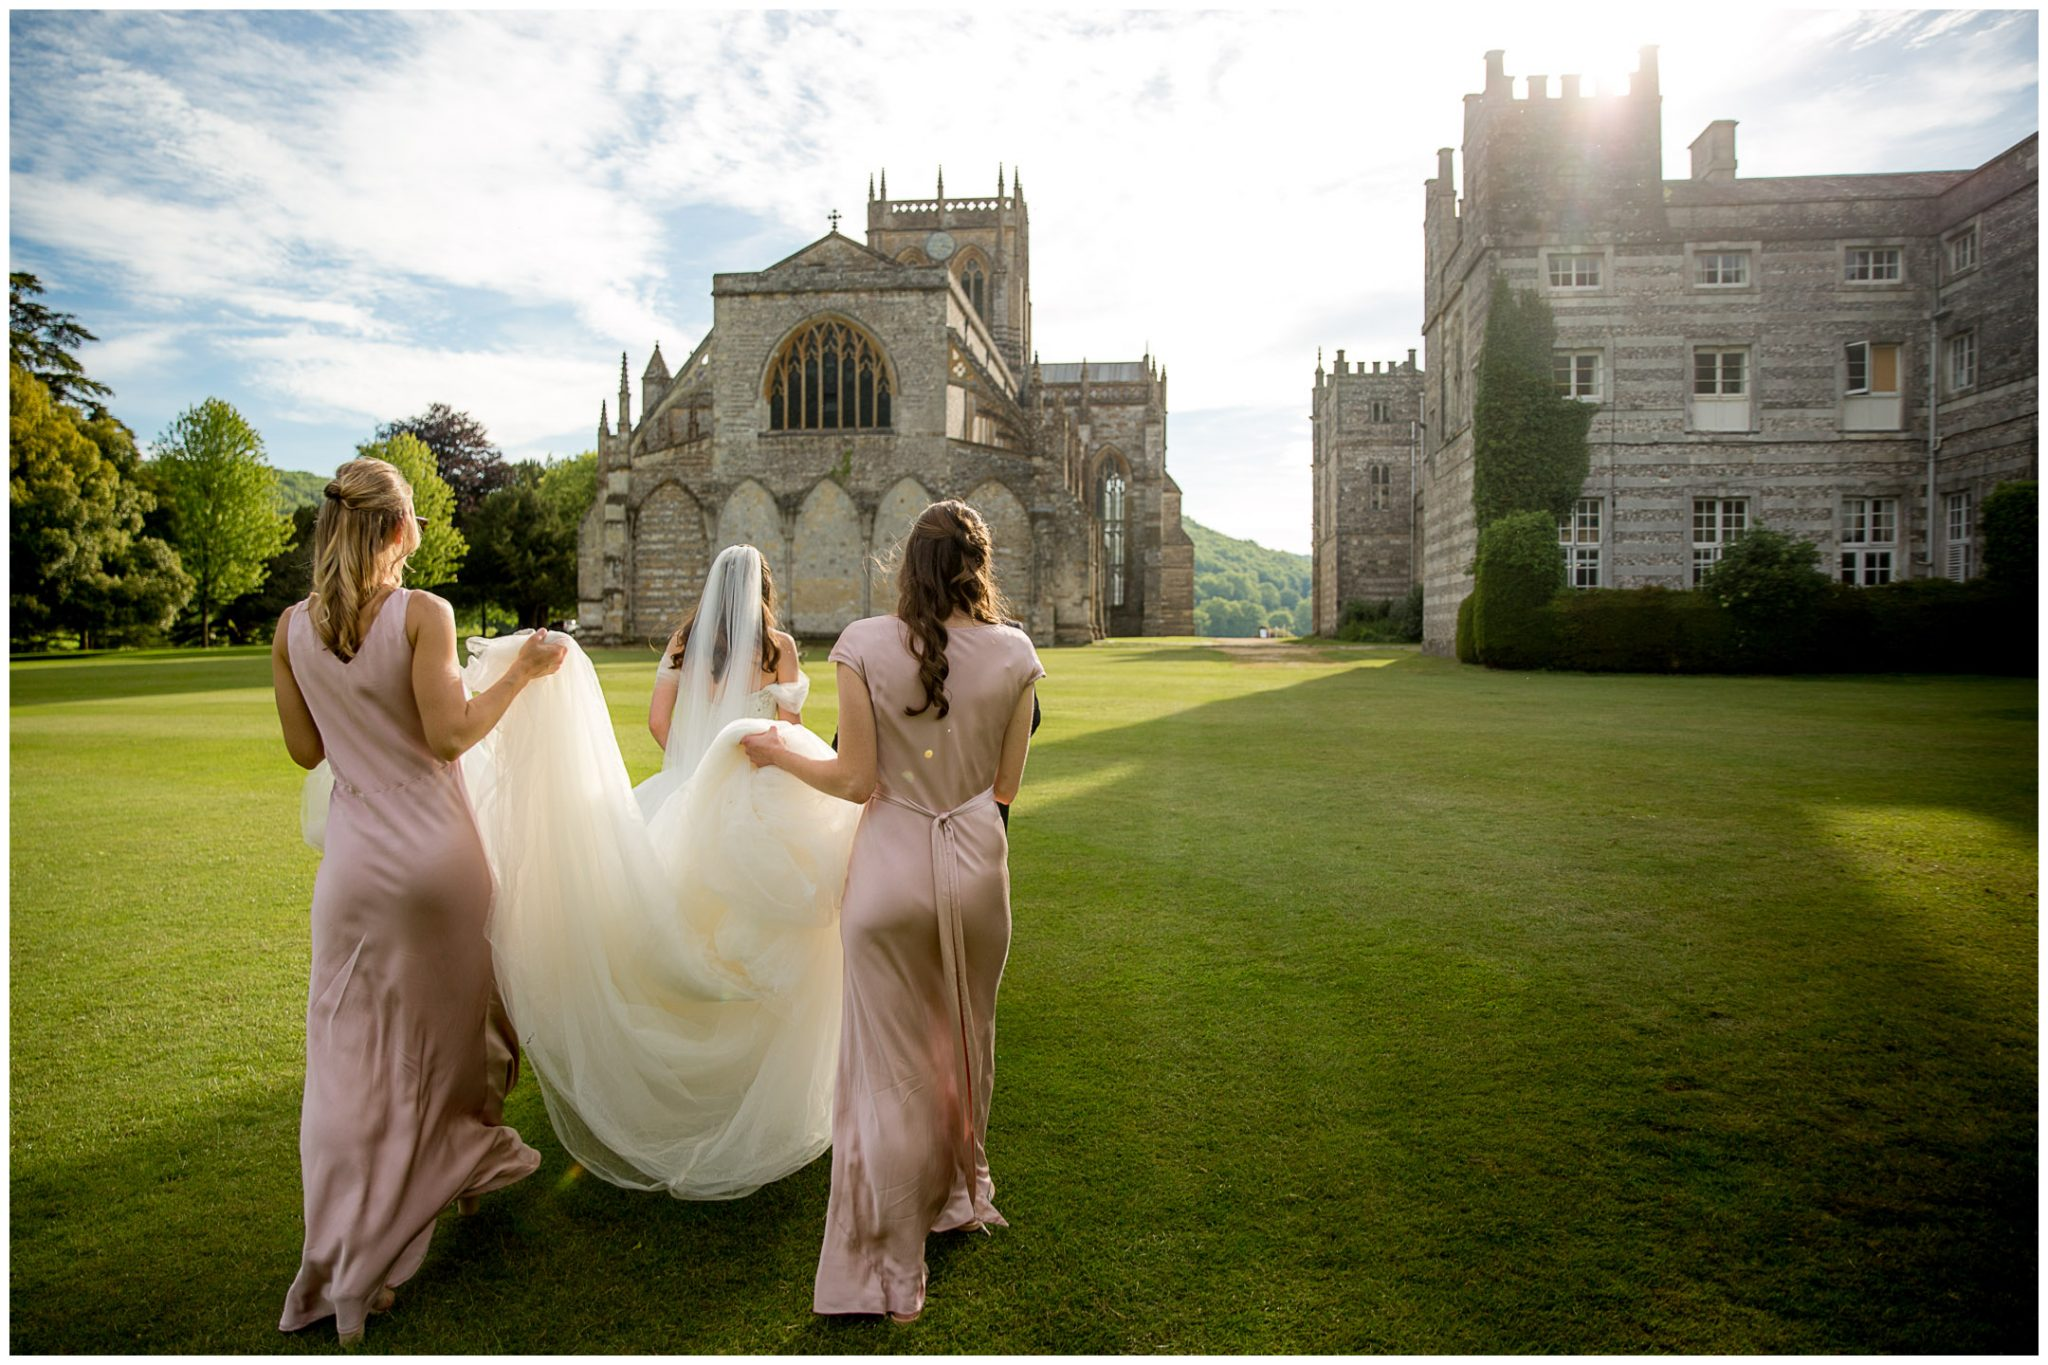 Bridesmaids help to carry the train of the bride's wedding dress